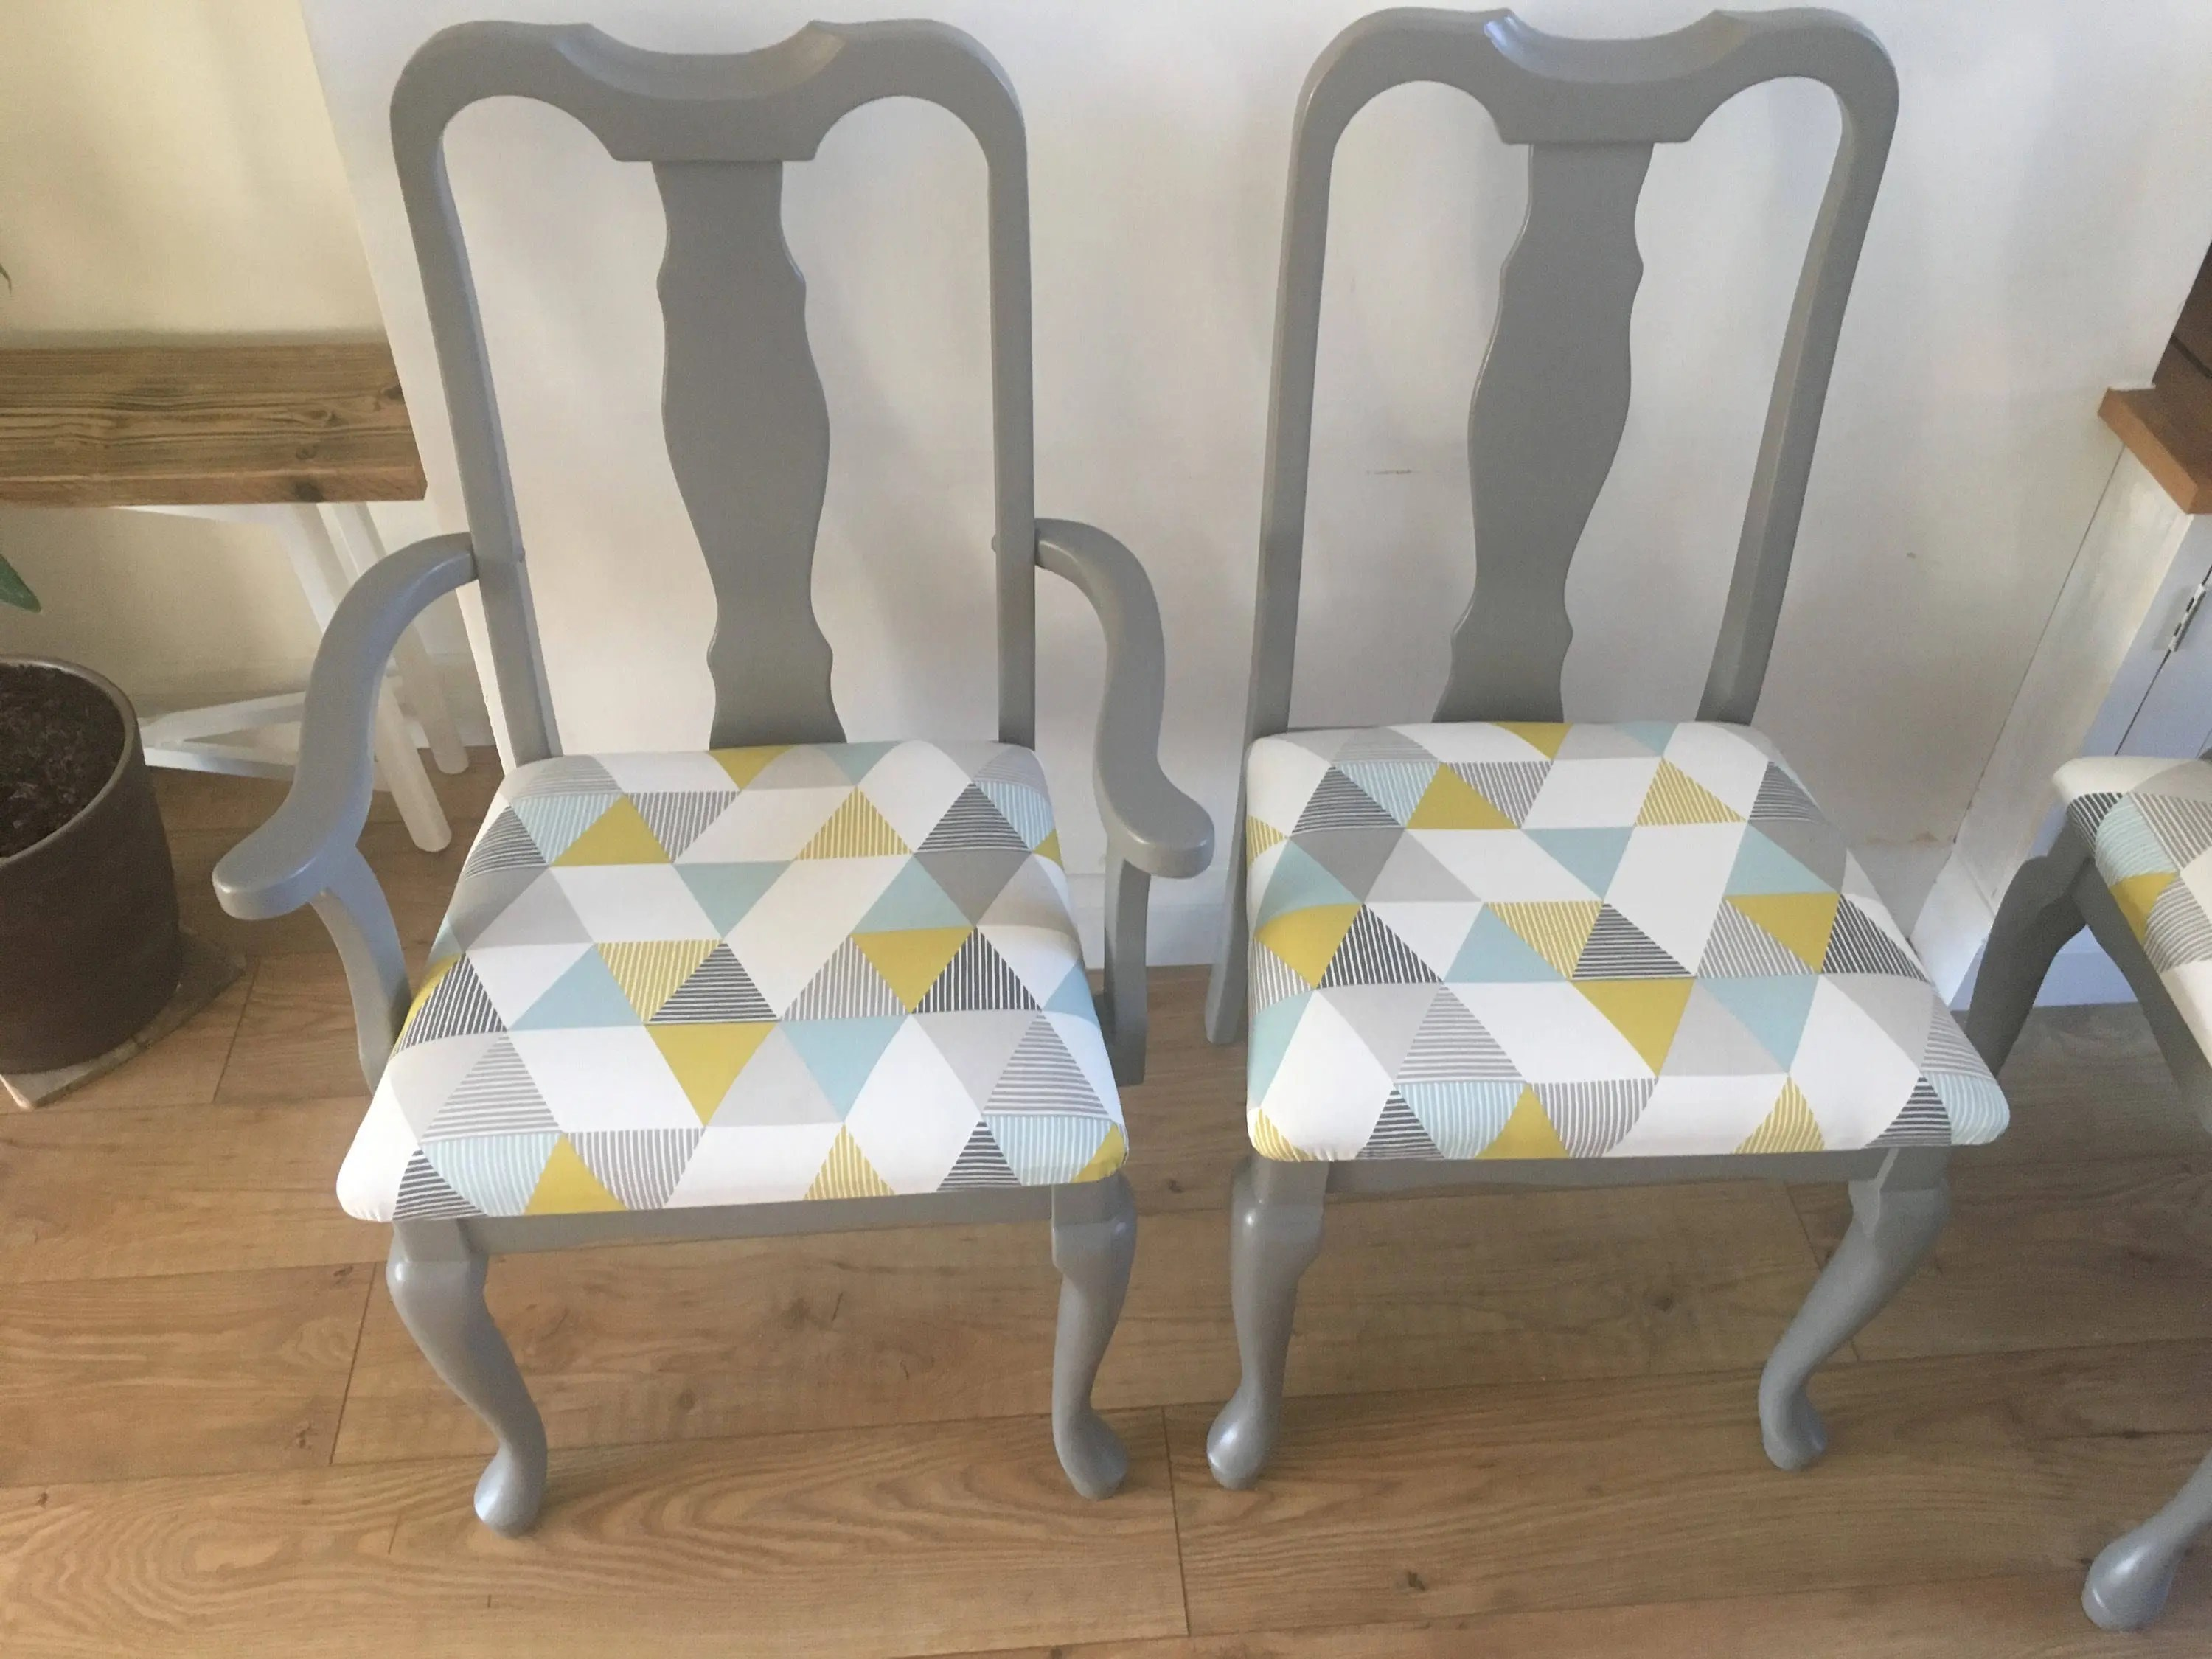 Refurbished Chairs Unique Refurbished Reupholstered Vintage Solid Wood Grey Geometric Dining Chairs X4